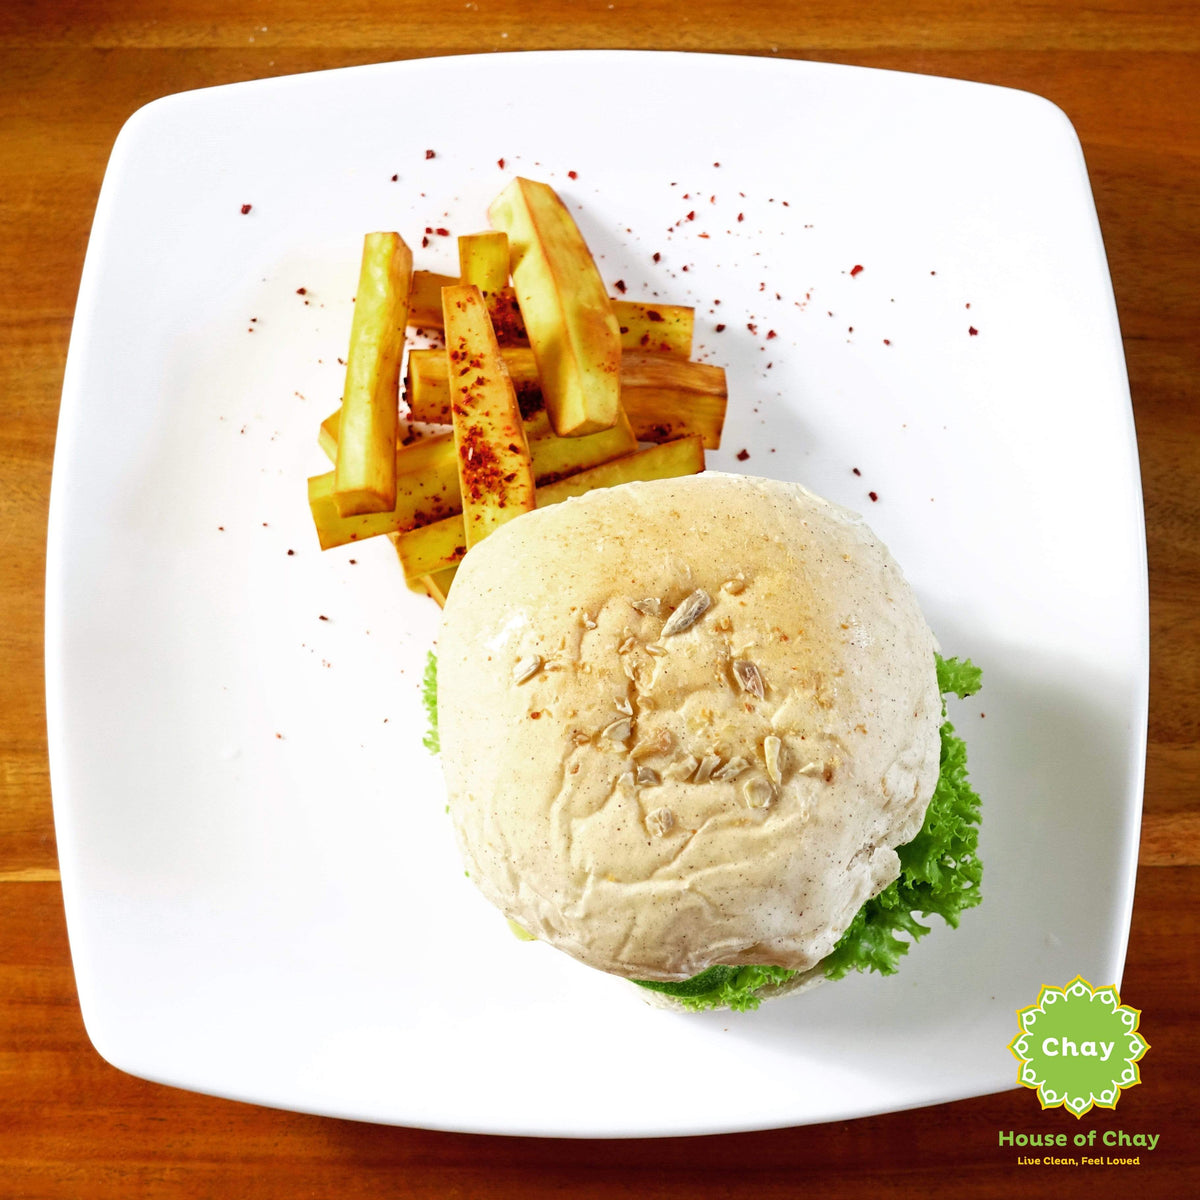 Chickpea Burger & Baked Sweet Potato Fries (V. Opt.) BG05